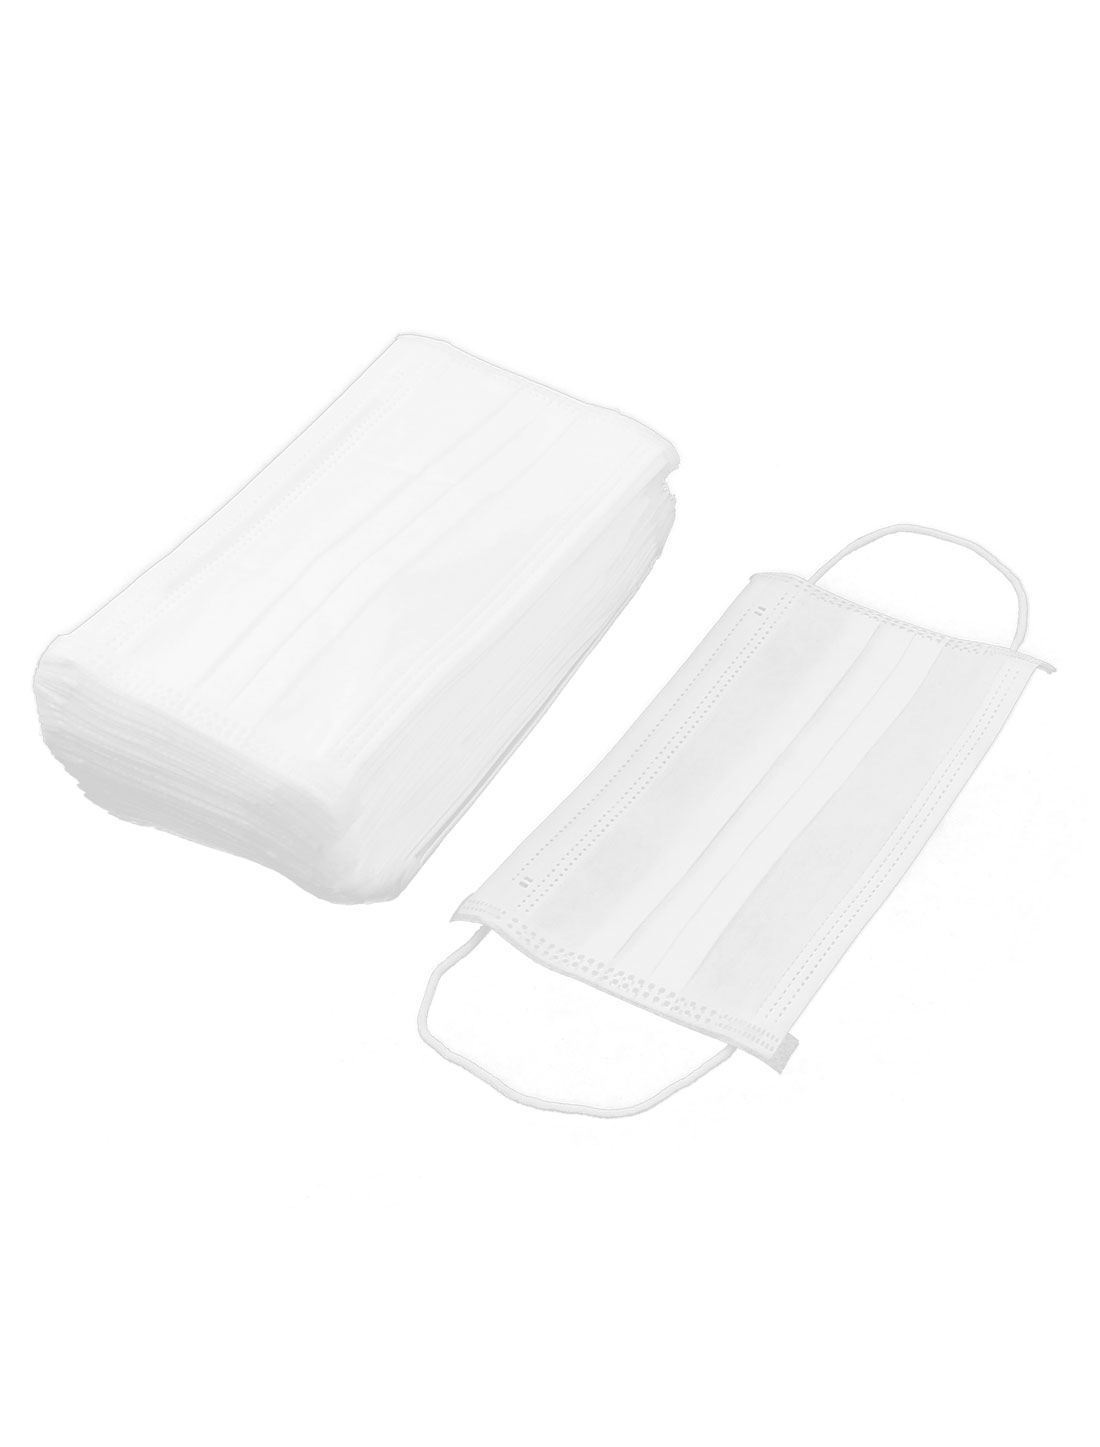 Unisex 3 Layer Disposable Earloop Face Mask White 50 Pcs